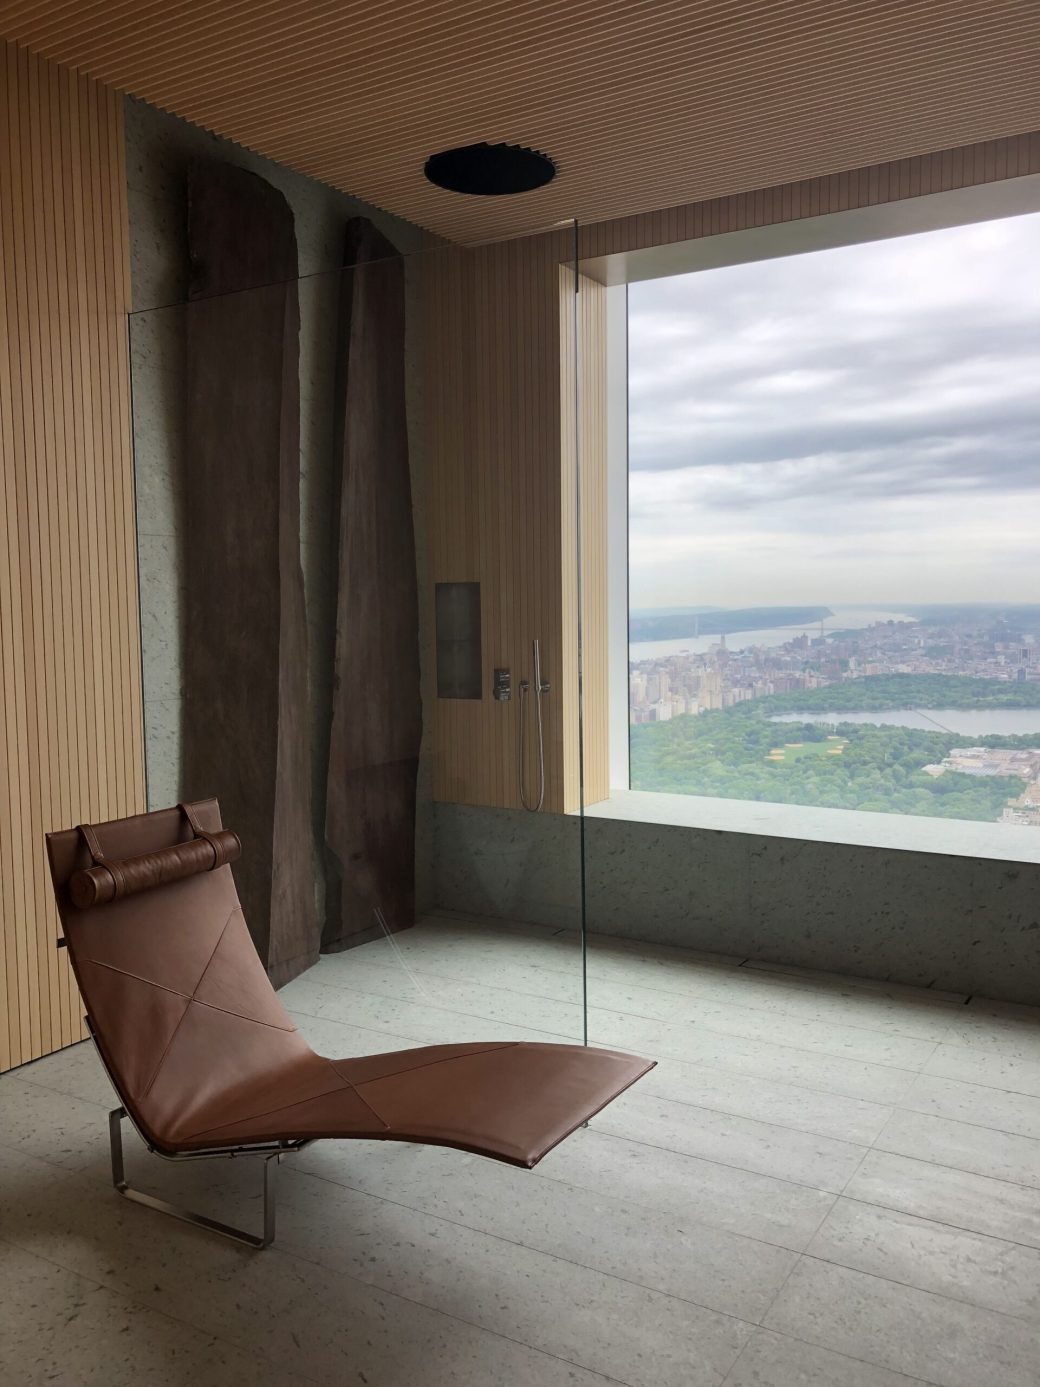 432 Park Ave his bath shower in Japanese marble with two sculptural plinths